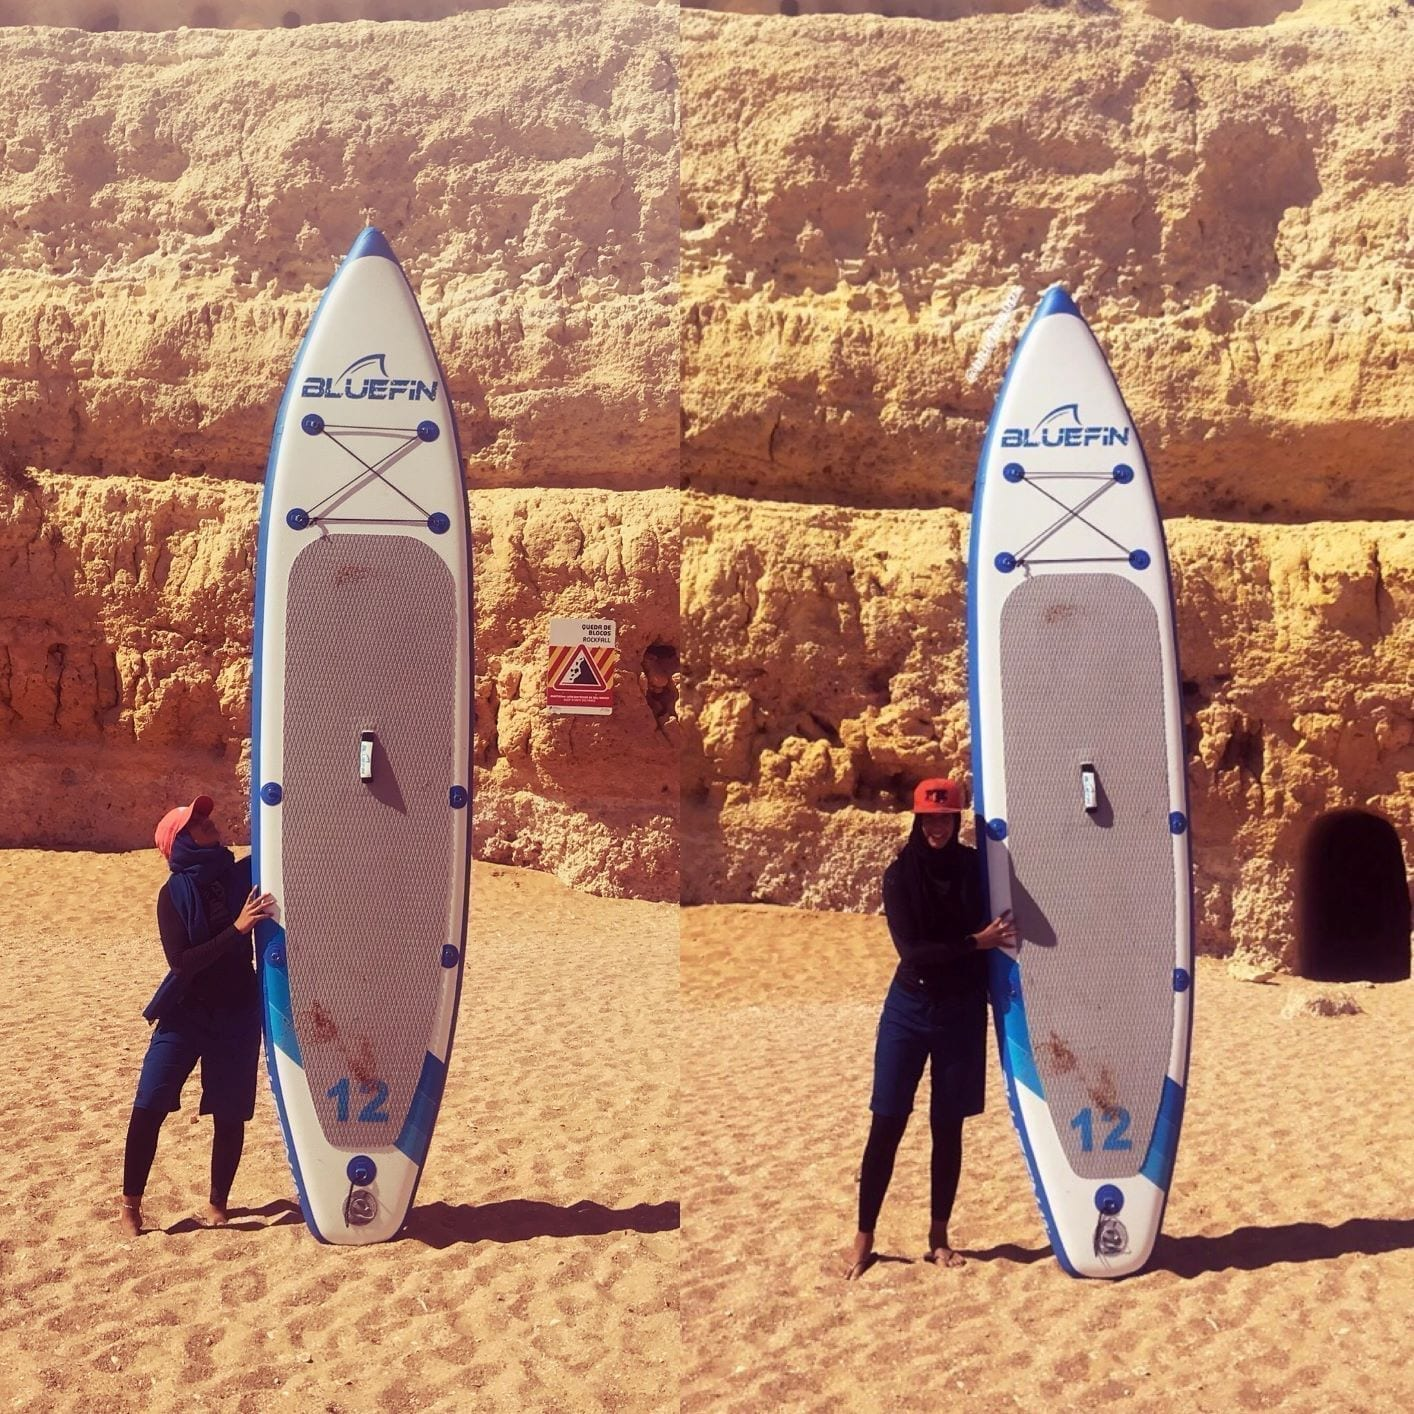 Yasmeen with 12' Bluefin sup cruise on beach in portugal